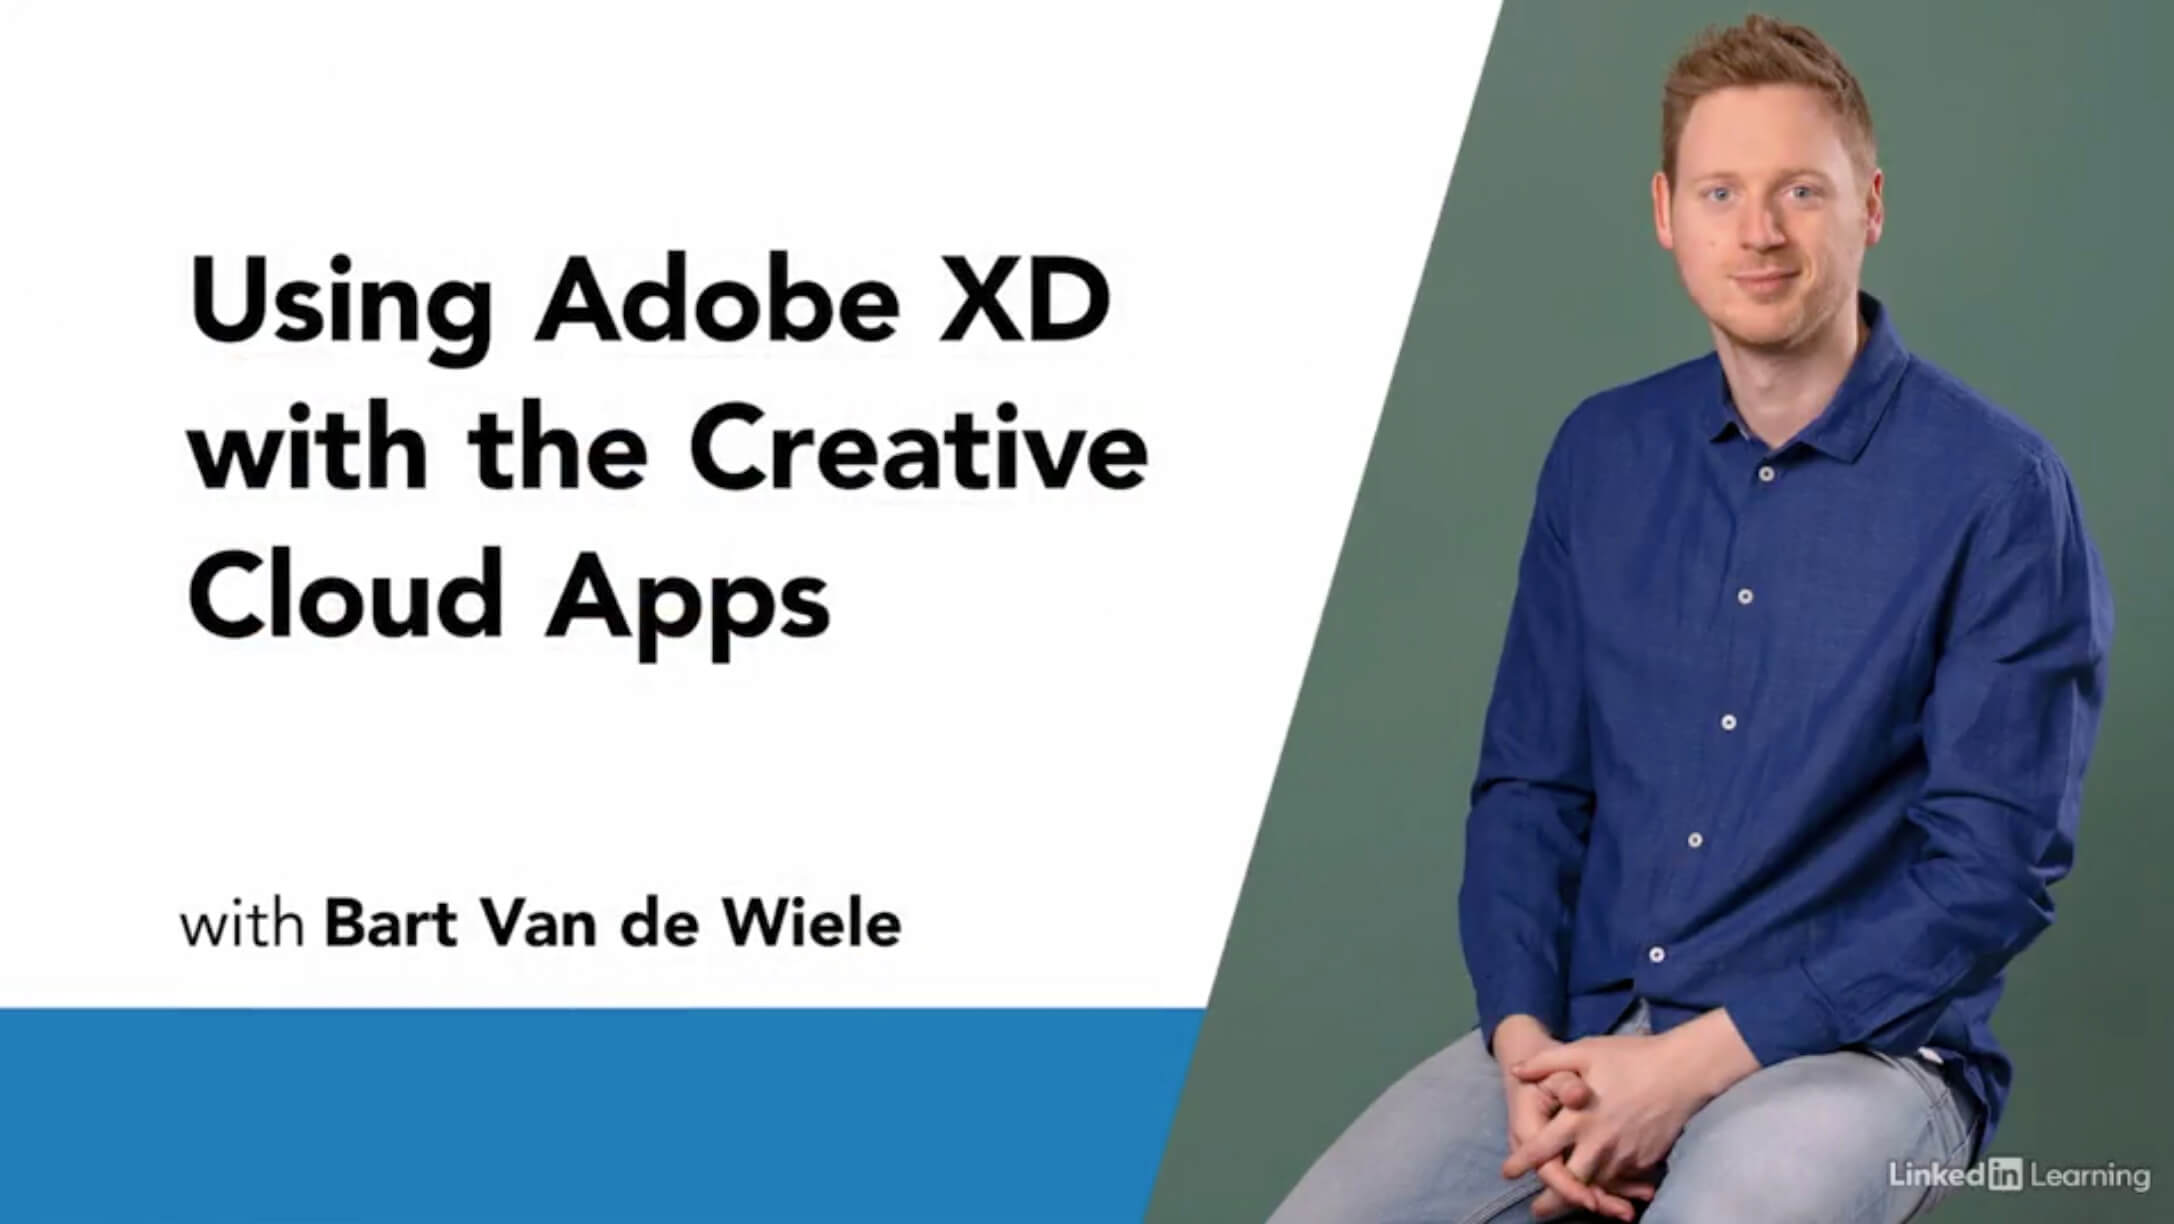 adobe xd courses on linkedin